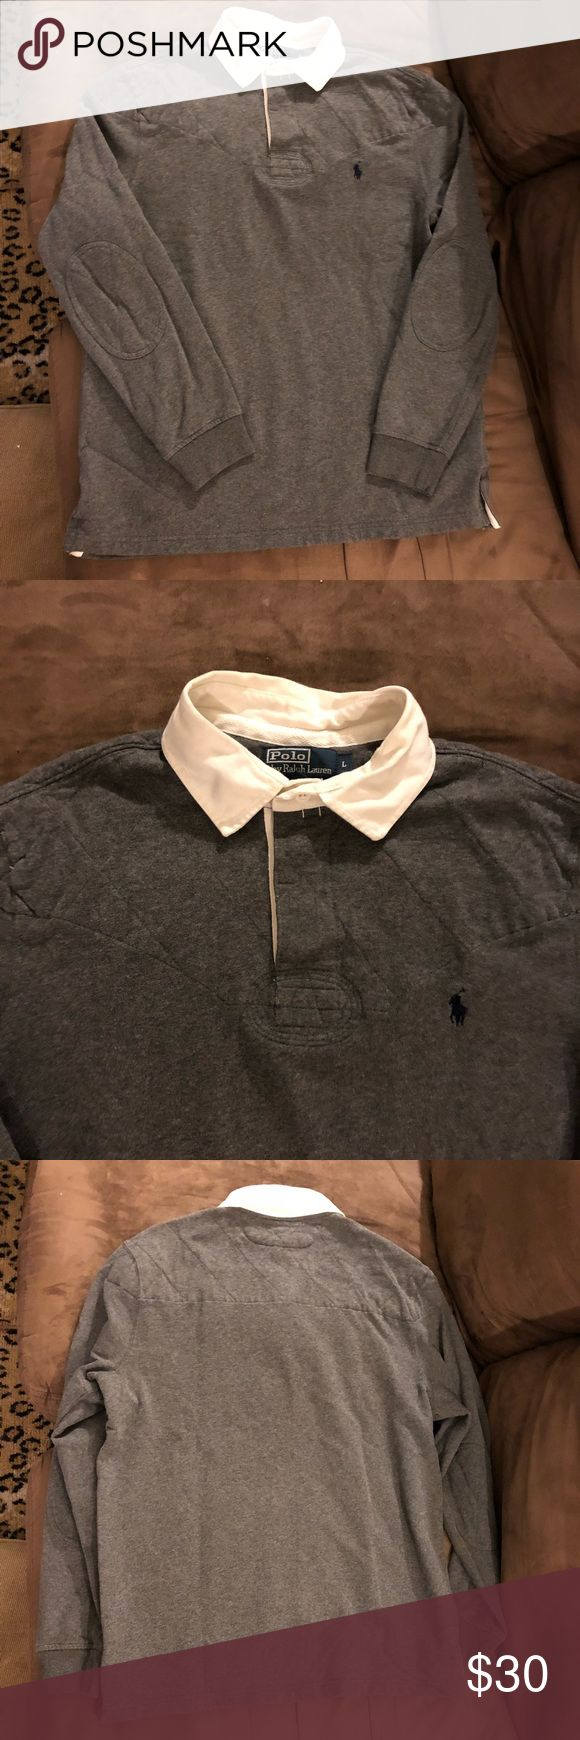 Polo Ralph Lauren Grey Quilted Rugby Shirt L Polo Ralph Lauren Solid Grey With Quilted Padded Shoulders and Elbow Patches Long Sleeve Rugby Shirt size L! Great condition! Please make reasonable offers and bundle! Ask questions! :) Polo by Ralph Lauren Shirts